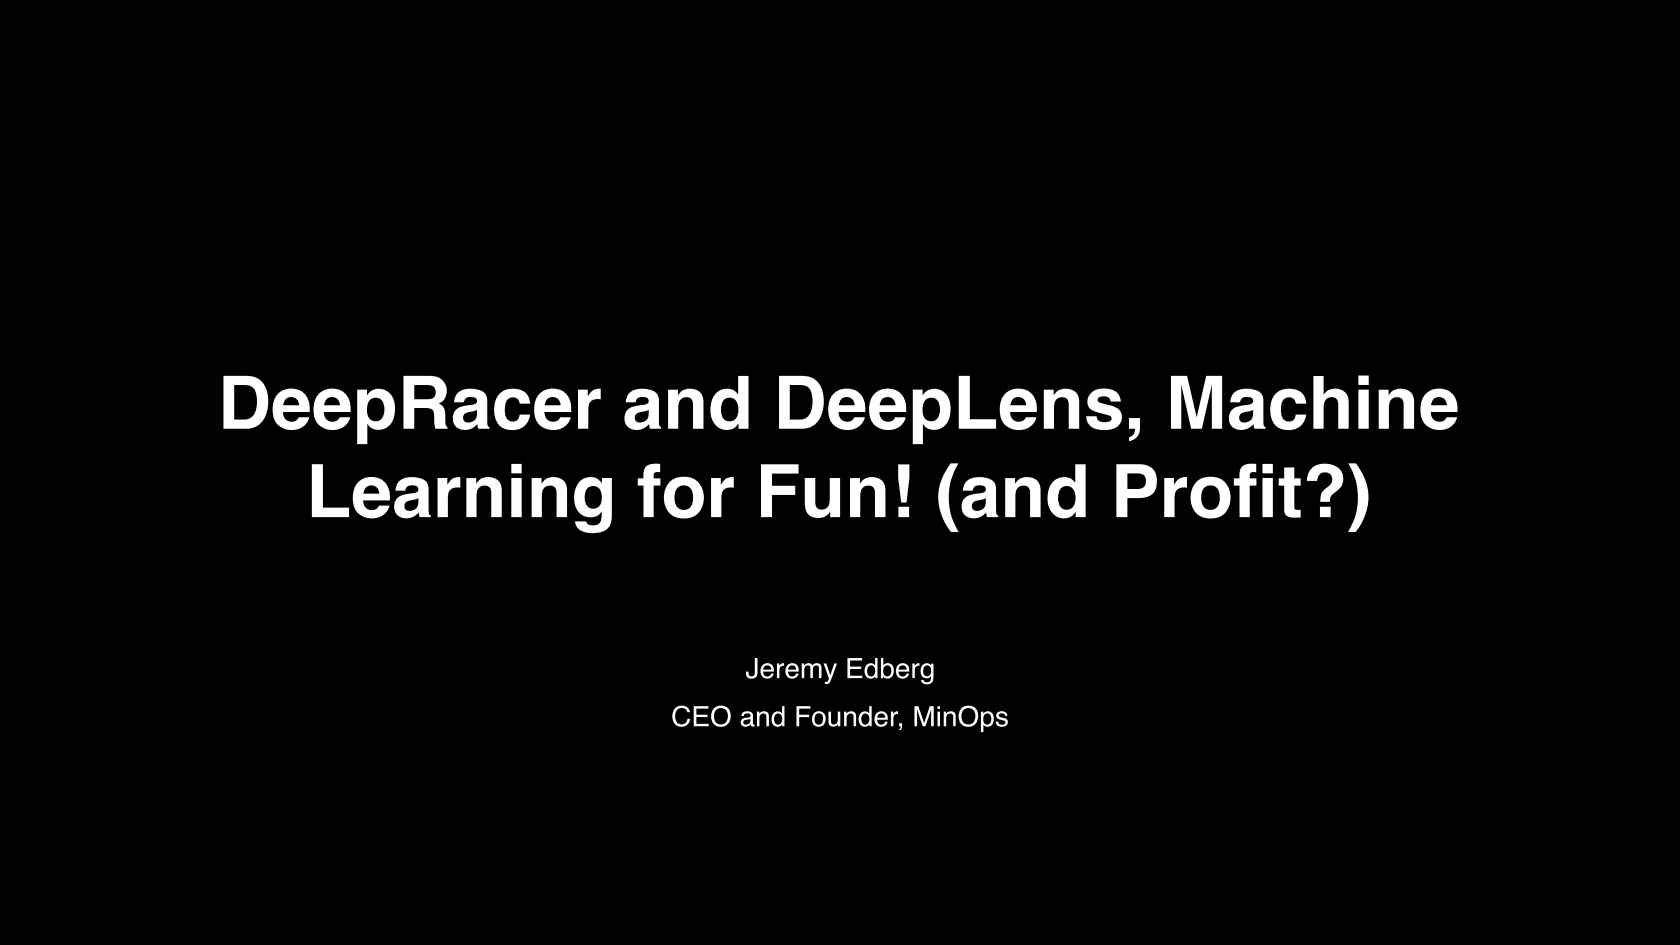 DeepRacer and DeepLens, Machine Learning for Fun! (and Profit?)